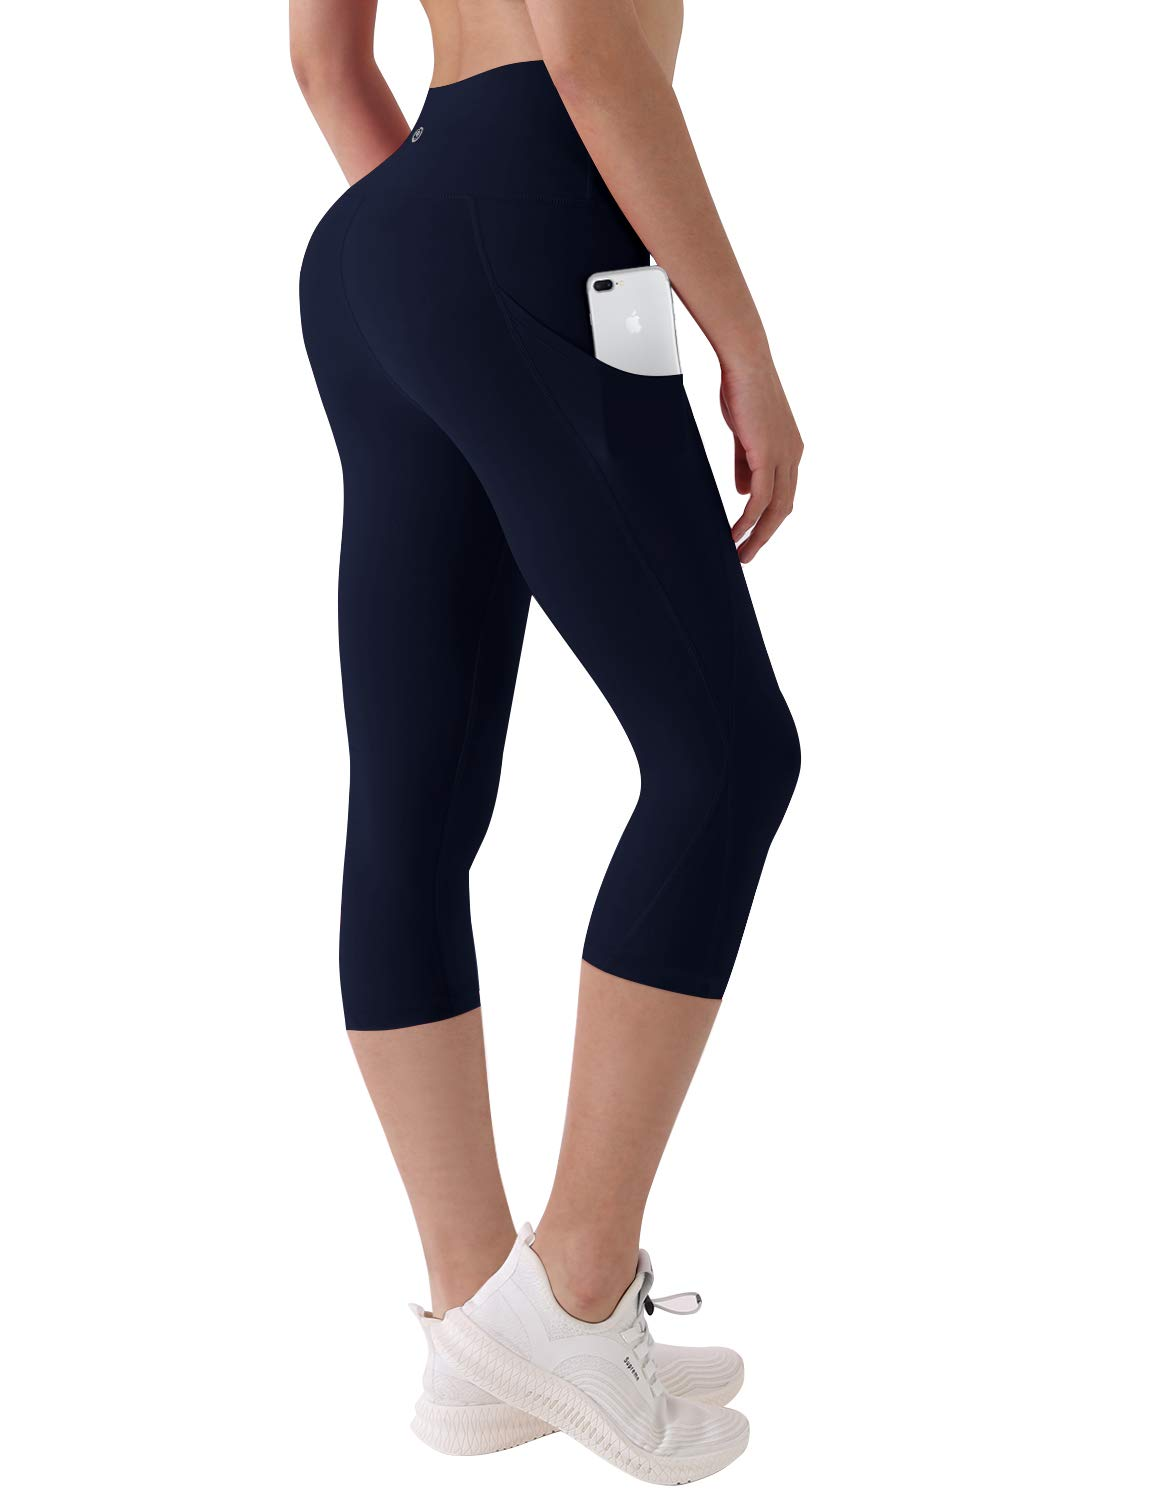 BUBBLELIME High Compression Yoga Pants Out Pocket Running Pants High Waist UPF30+, Bwsb029 Darknavy(1), Large(19'' inseam)